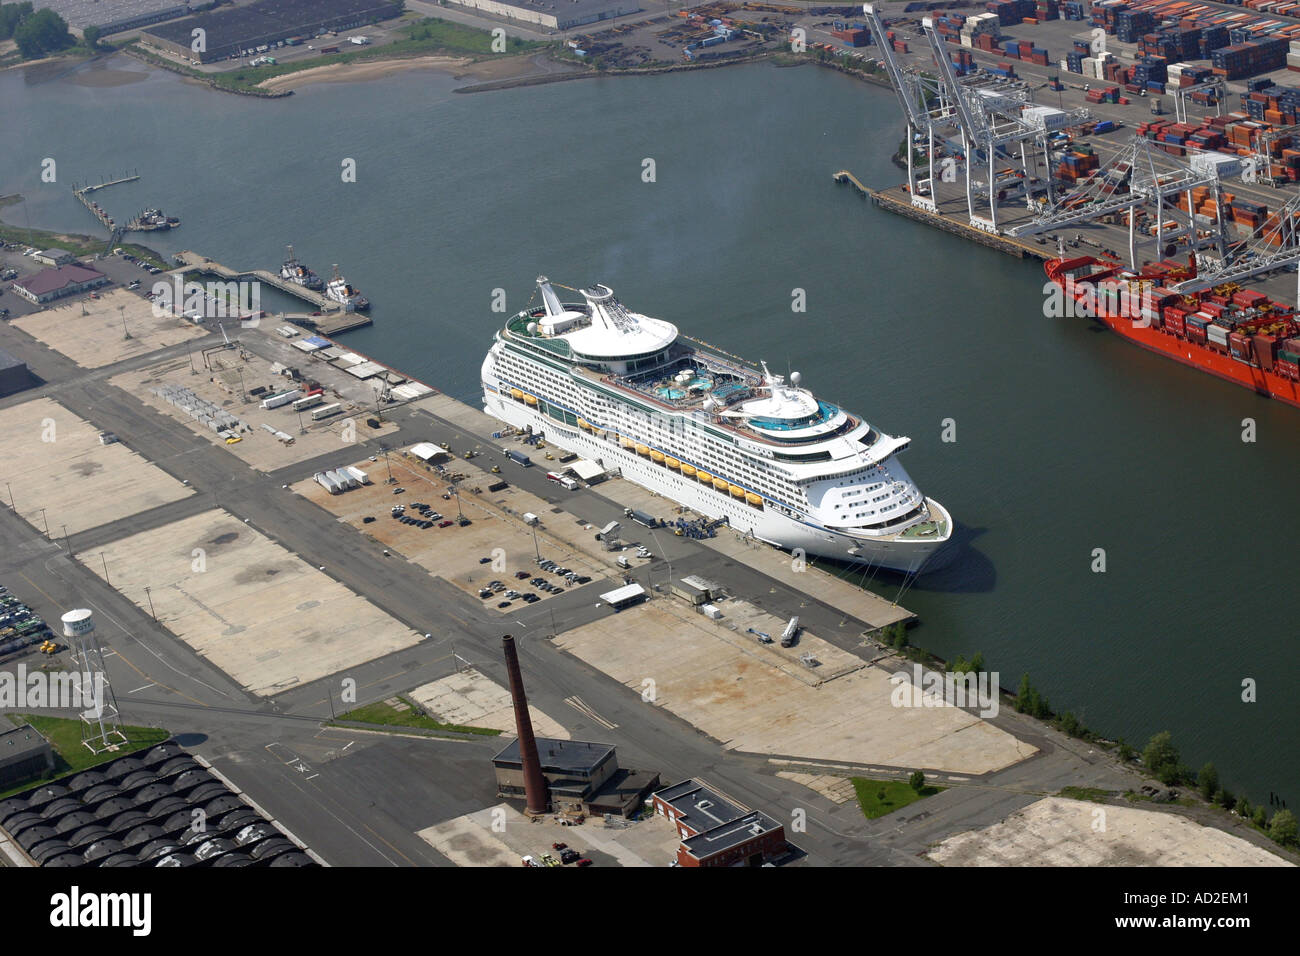 Aerial View Of Cruise Ship Docked At Bayonne New Jersey USA - Cruise ships from new jersey